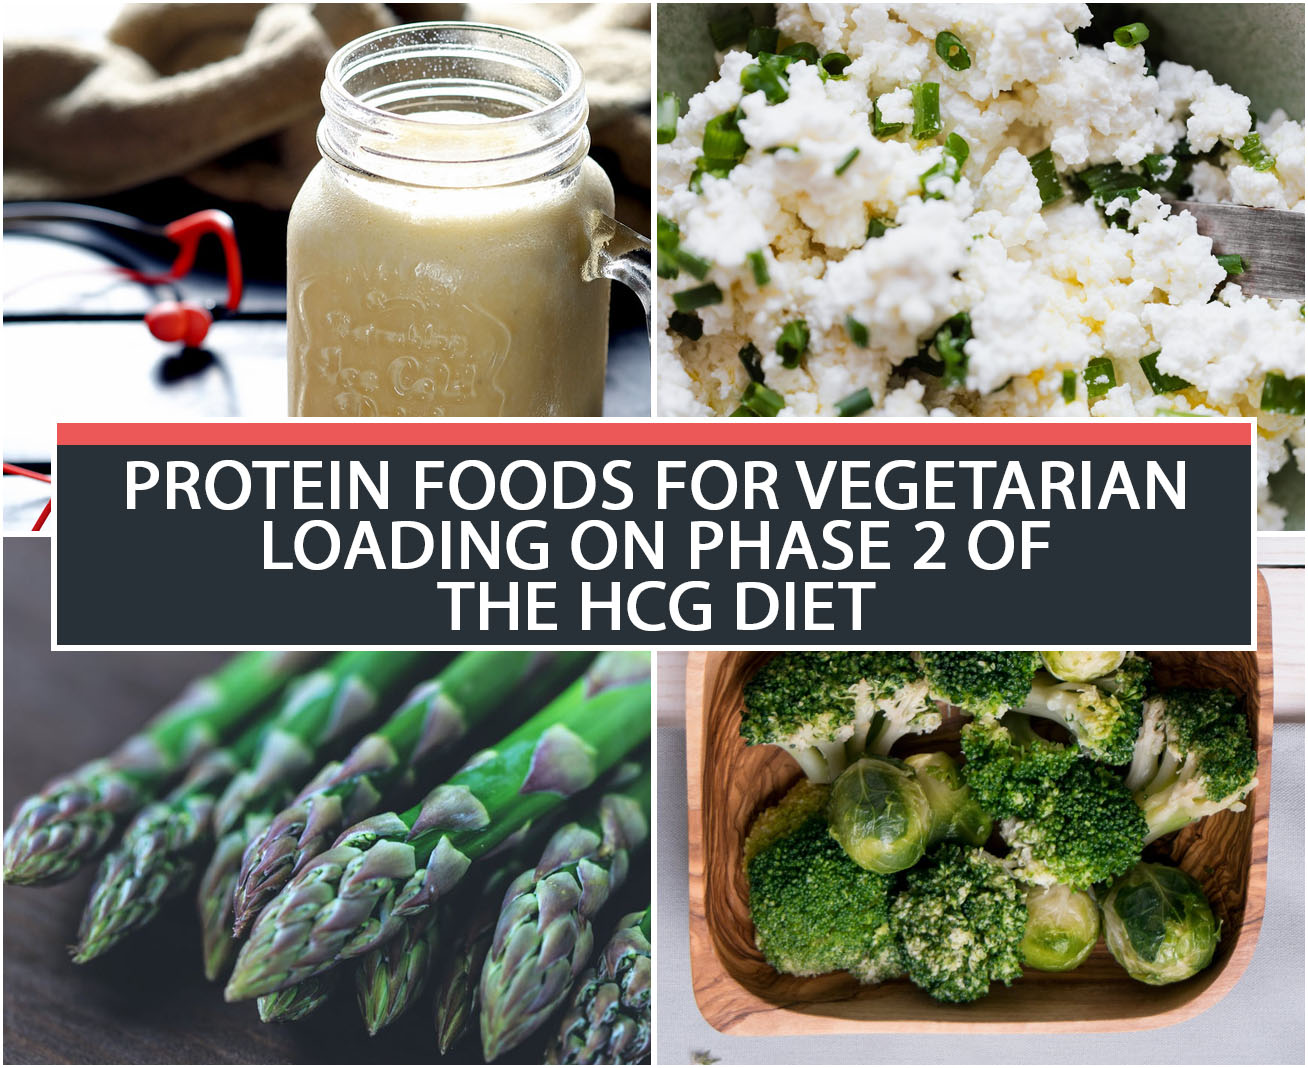 PROTEIN FOODS FOR VEGETARIAN LOADING ON PHASE 2 OF THE HCG DIET